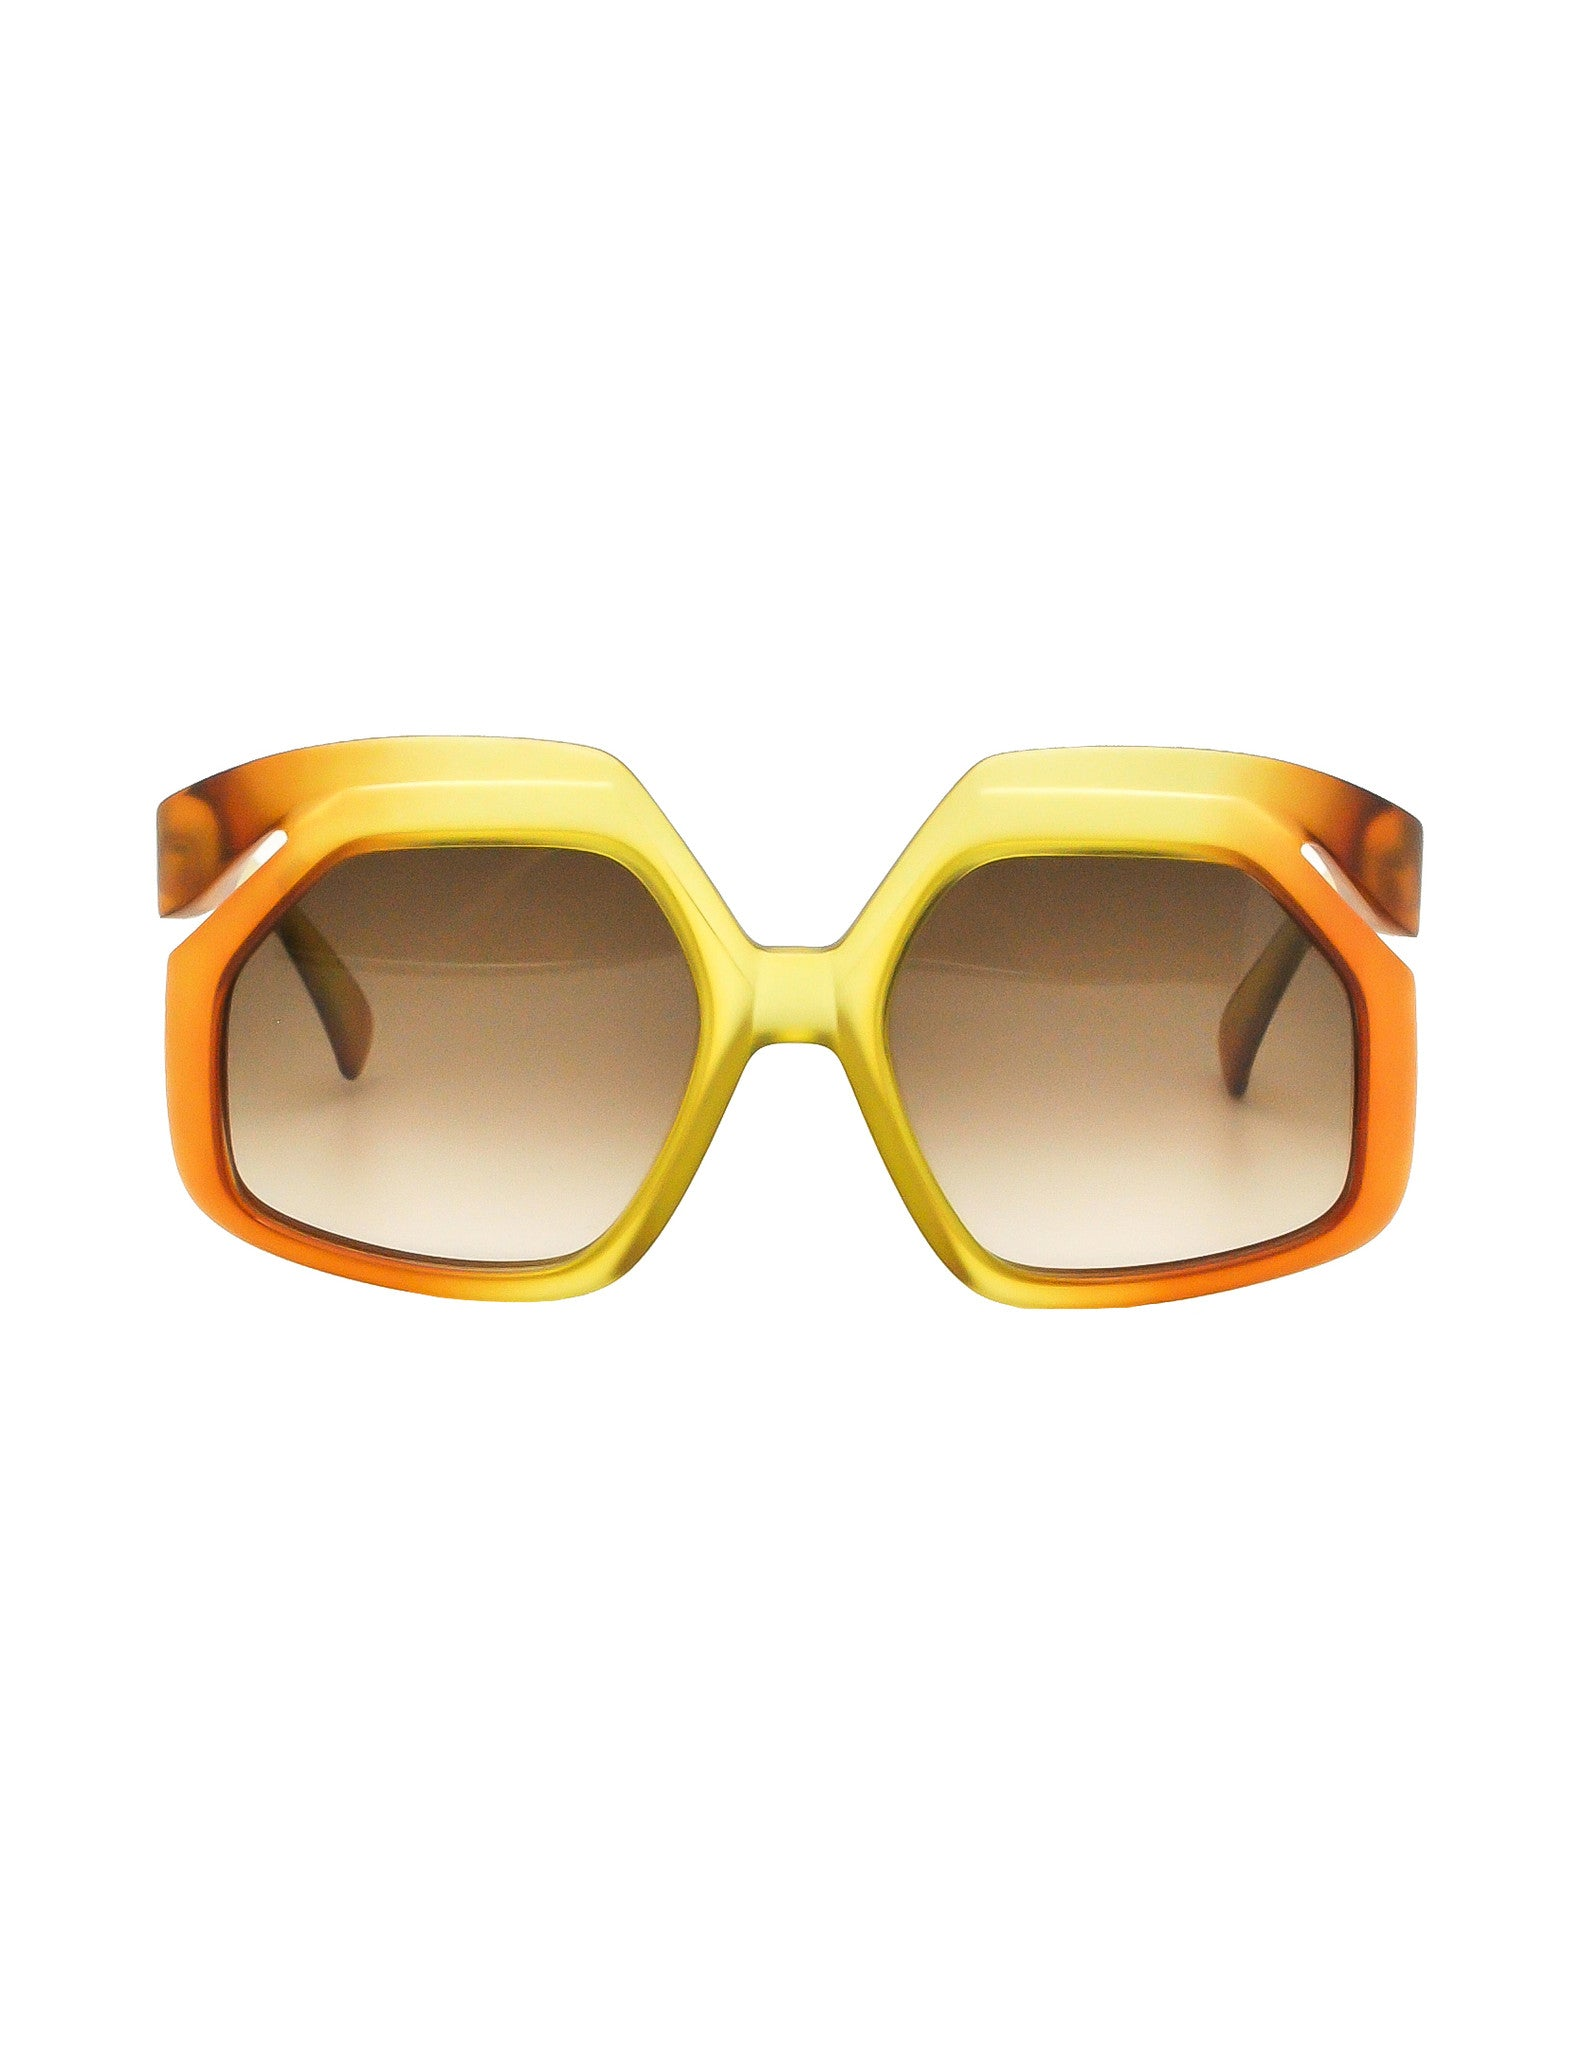 Christian Dior Vintage 1970s Yellow & Orange Ombre Sunglasses 2006 - Amarcord Vintage Fashion  - 1